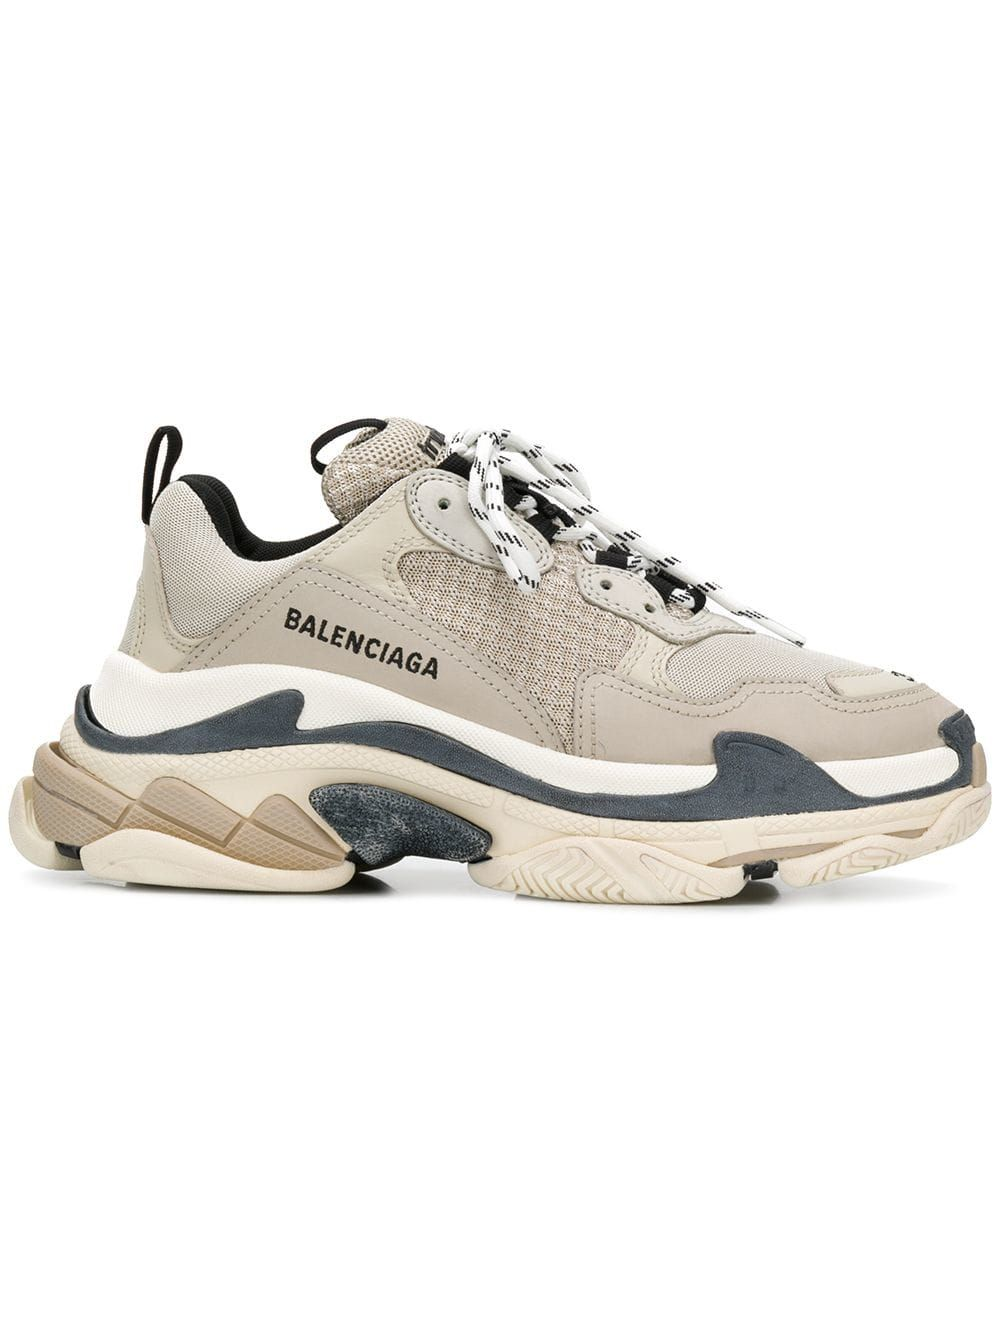 Triple S Logo Embroidered Leather, Nubuck And Mesh Sneakers